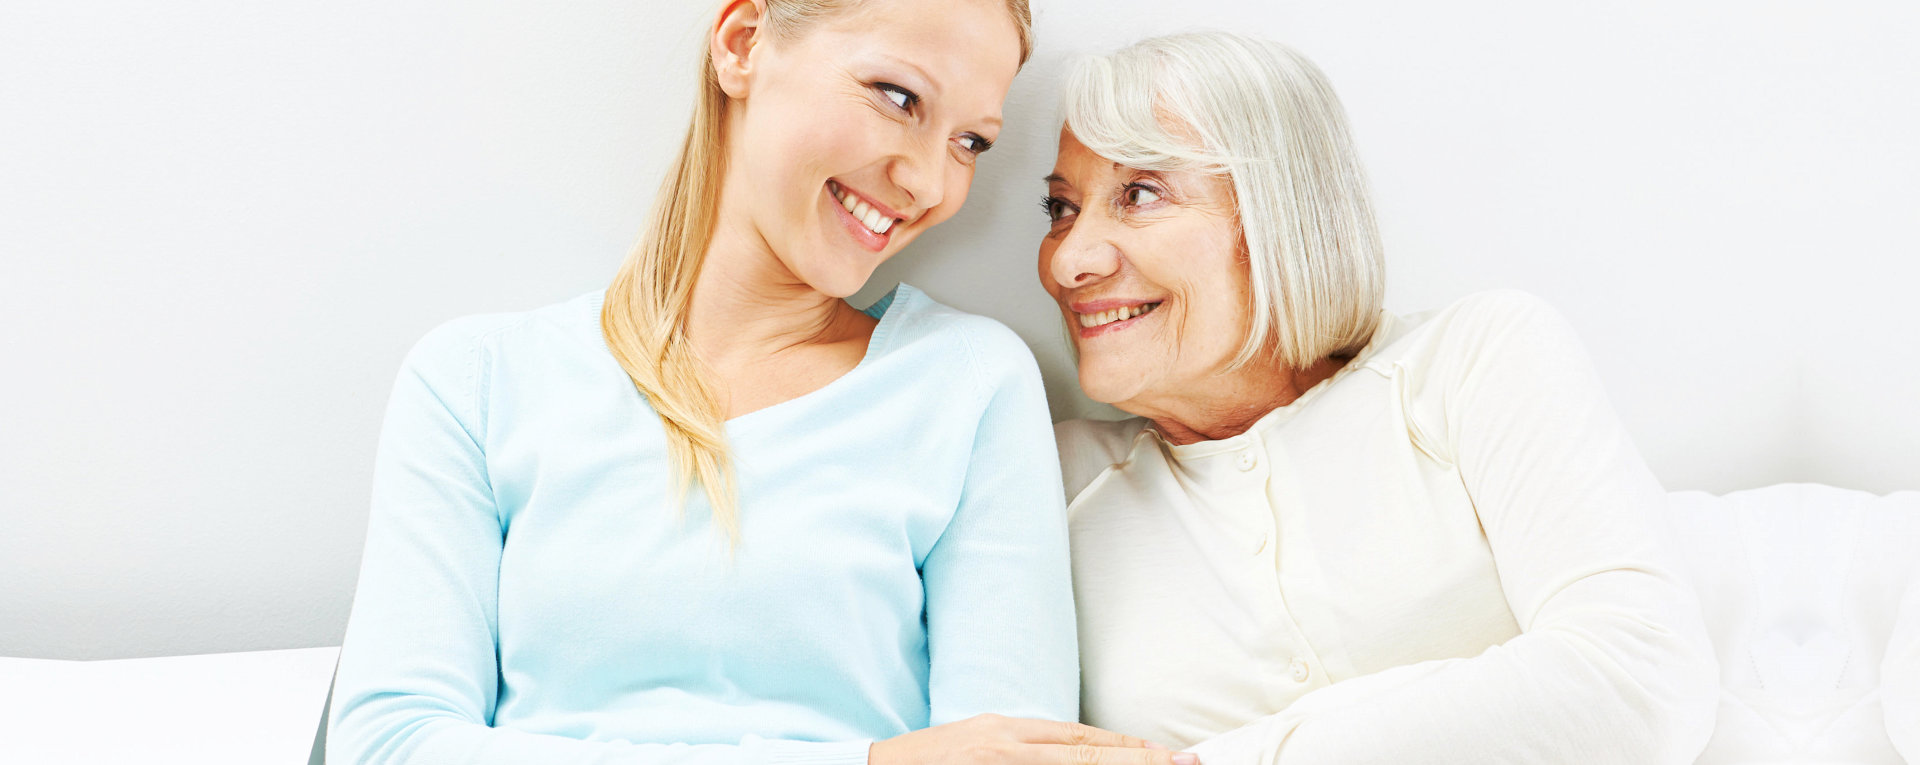 happy caregiver and patient